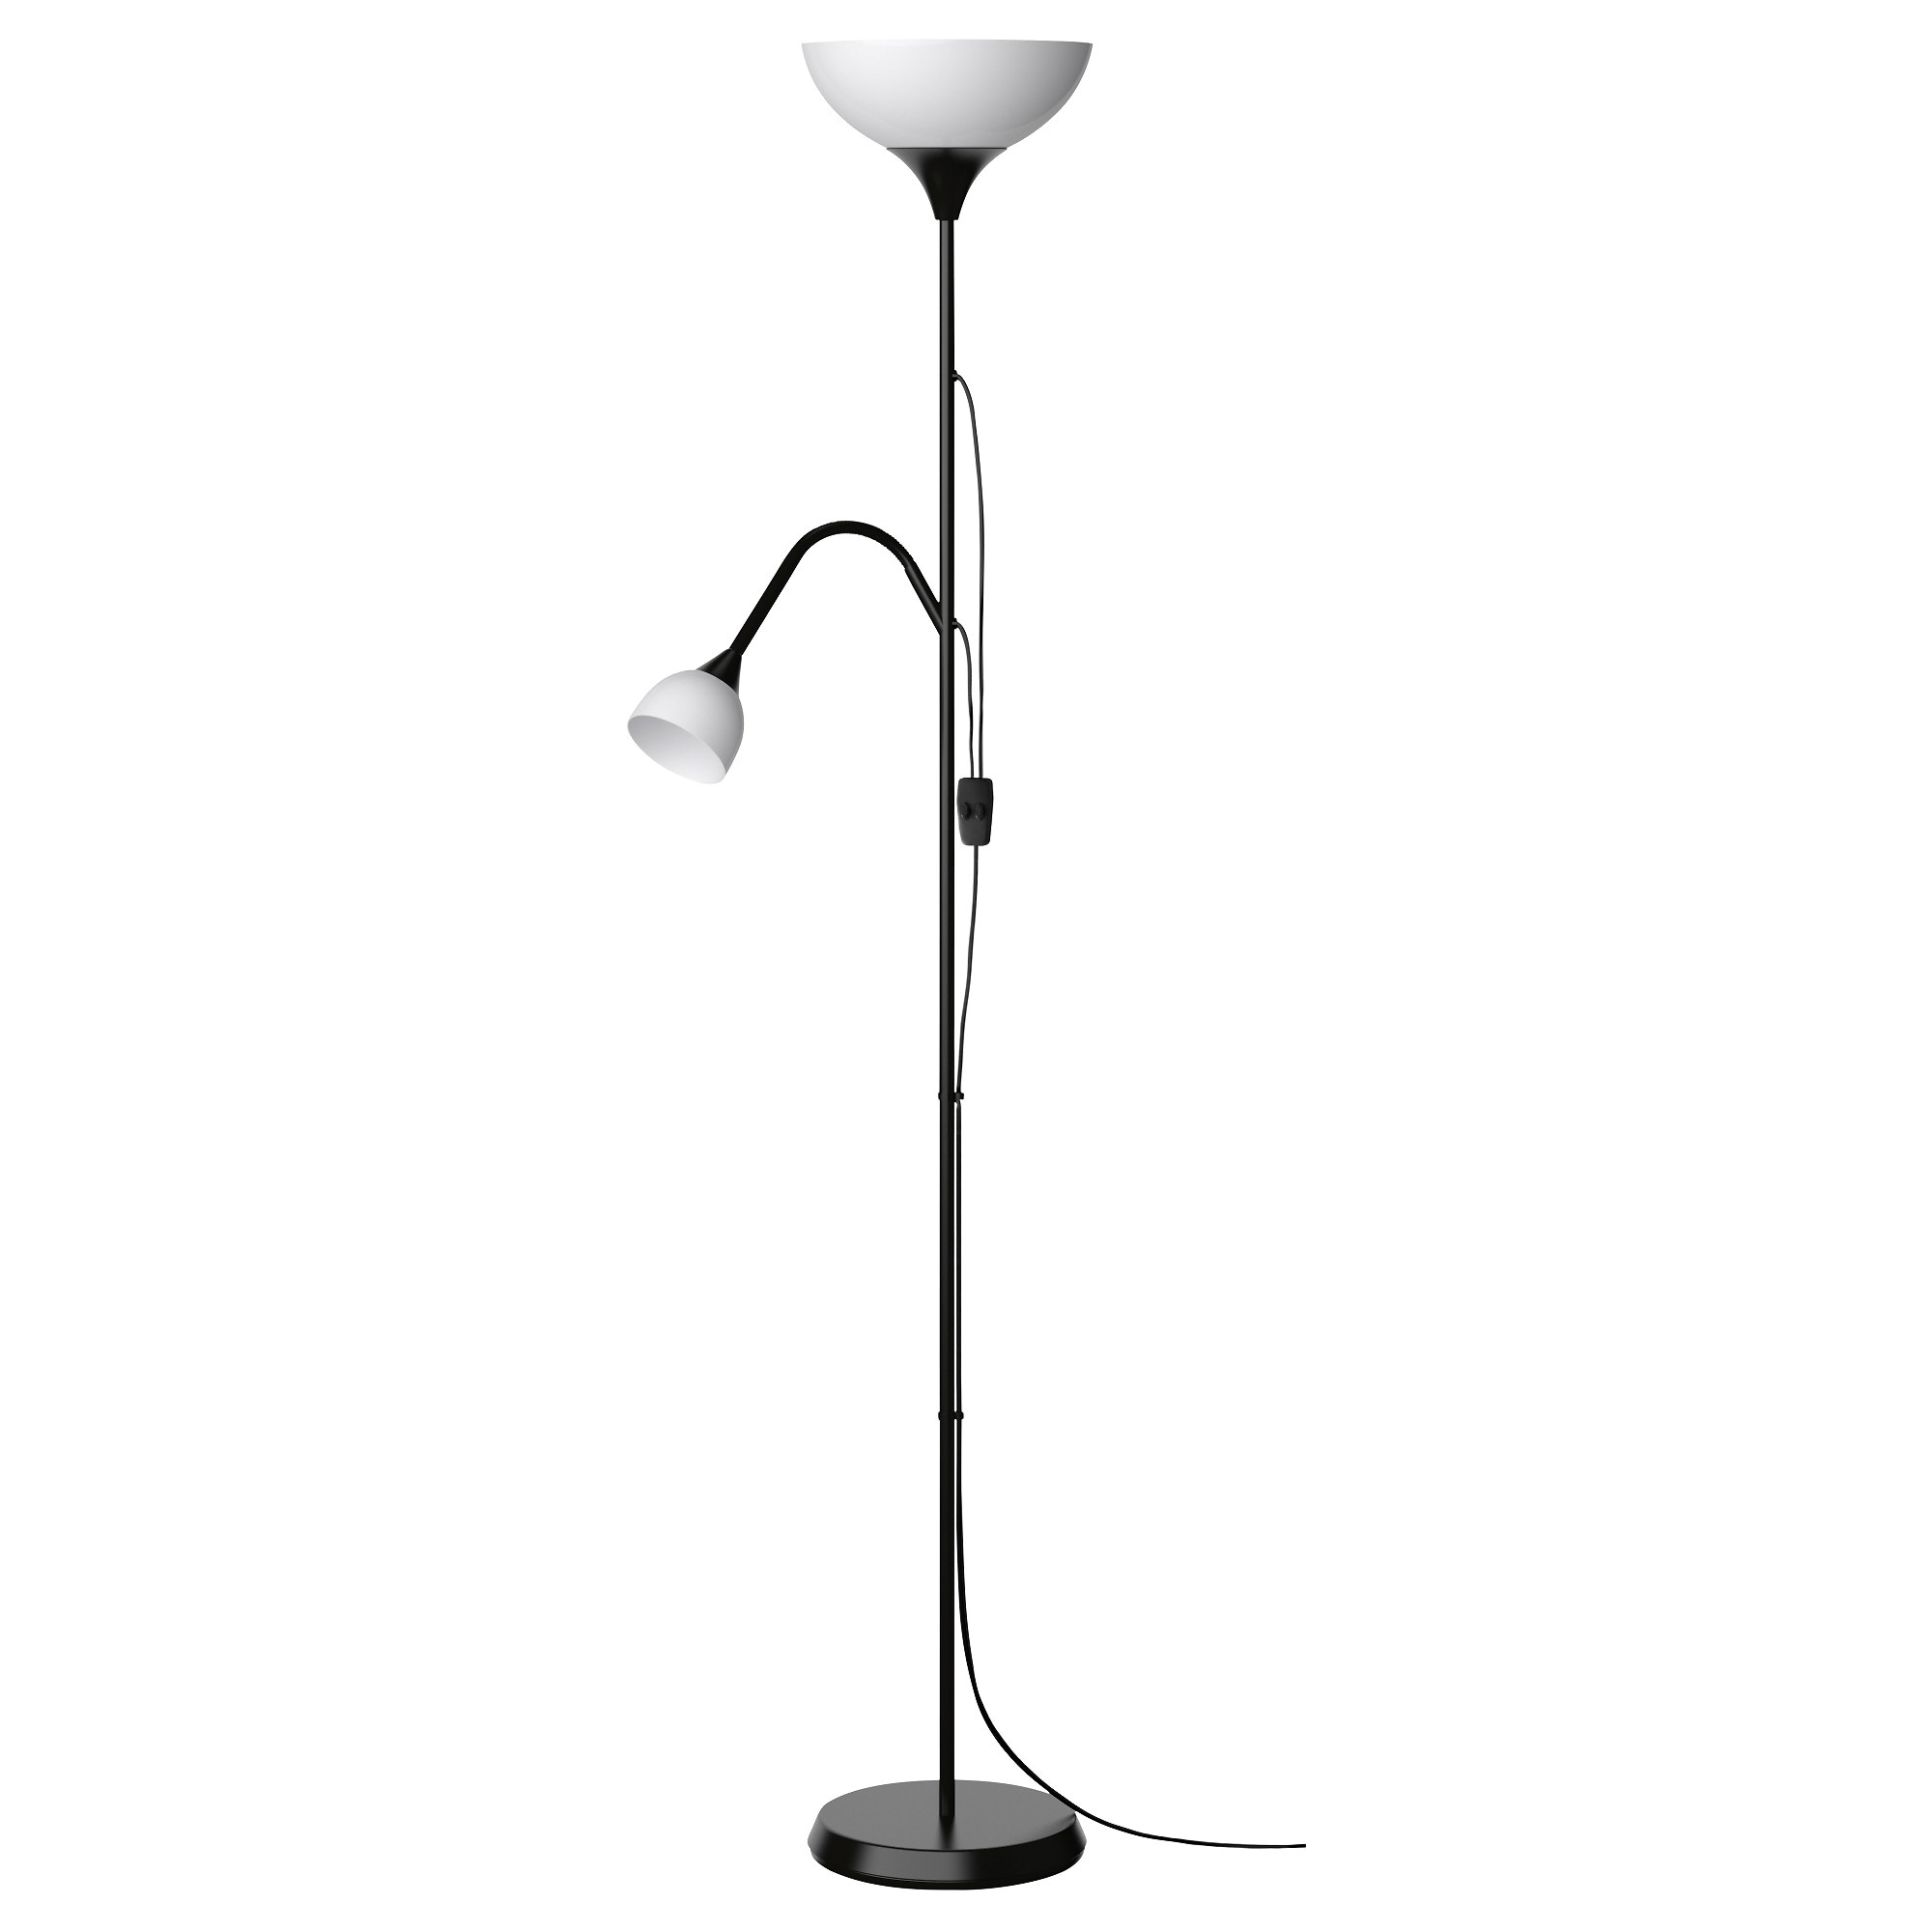 Elegant NOT Floor Uplight/reading Lamp   IKEA